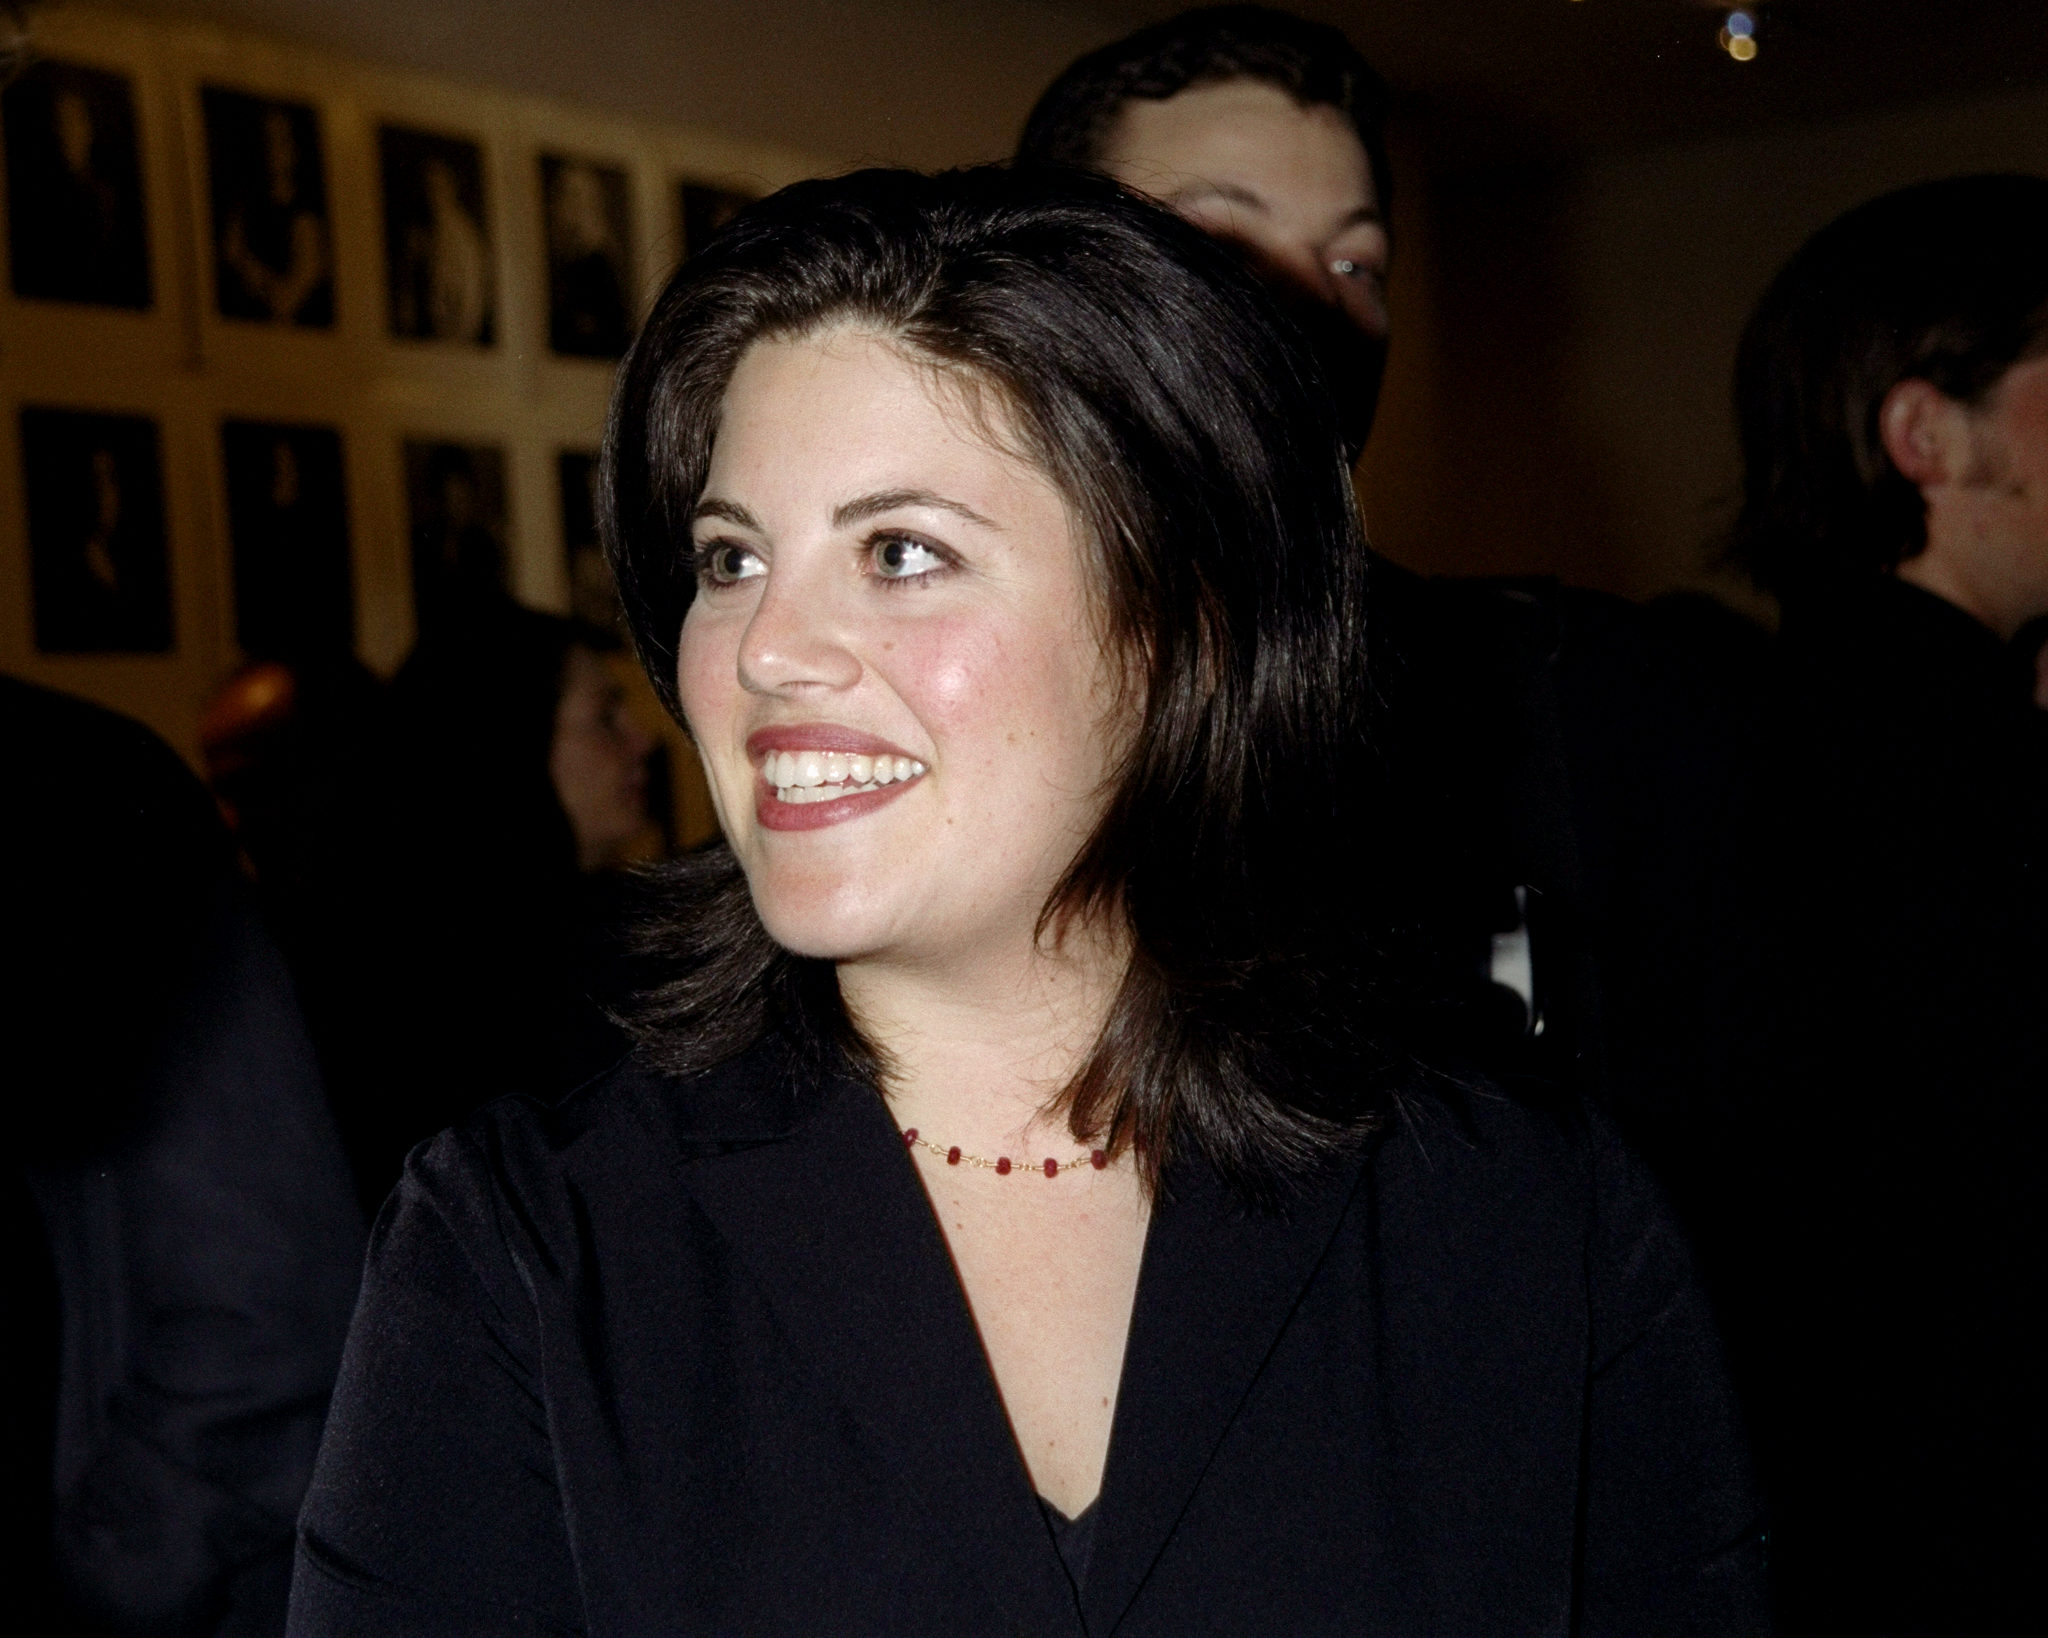 Monica Lewinsky attends the Timothy Greenfield-Sanders portrait photo exhibit at Mary Boone Gallery.